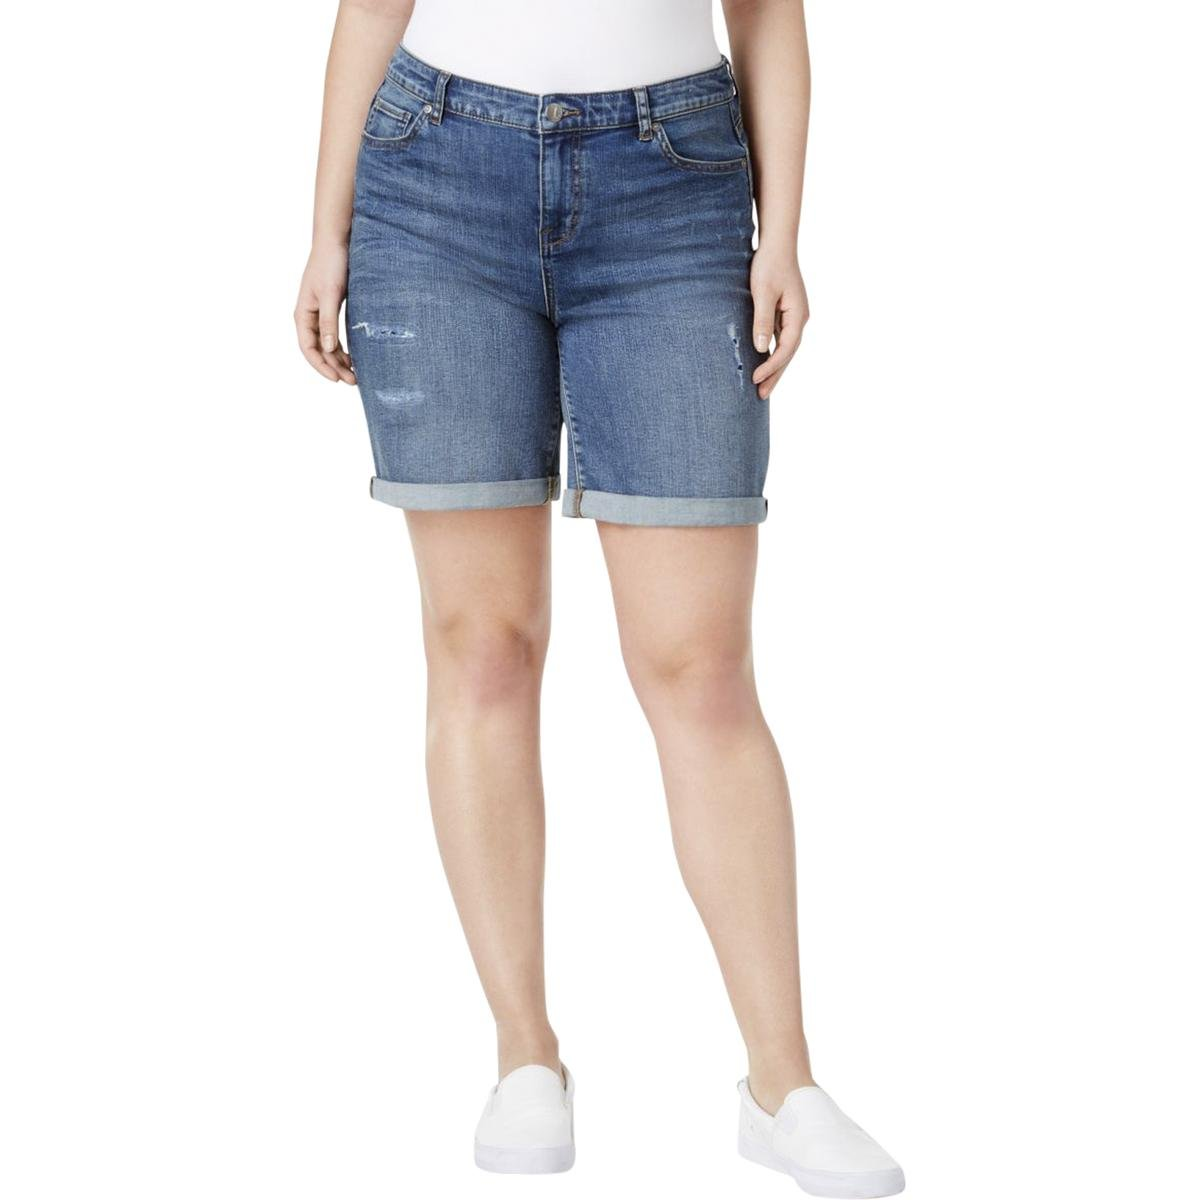 Style & Co.. Womens Plus Mid-Rise Distressed Denim Shorts Blue 18W